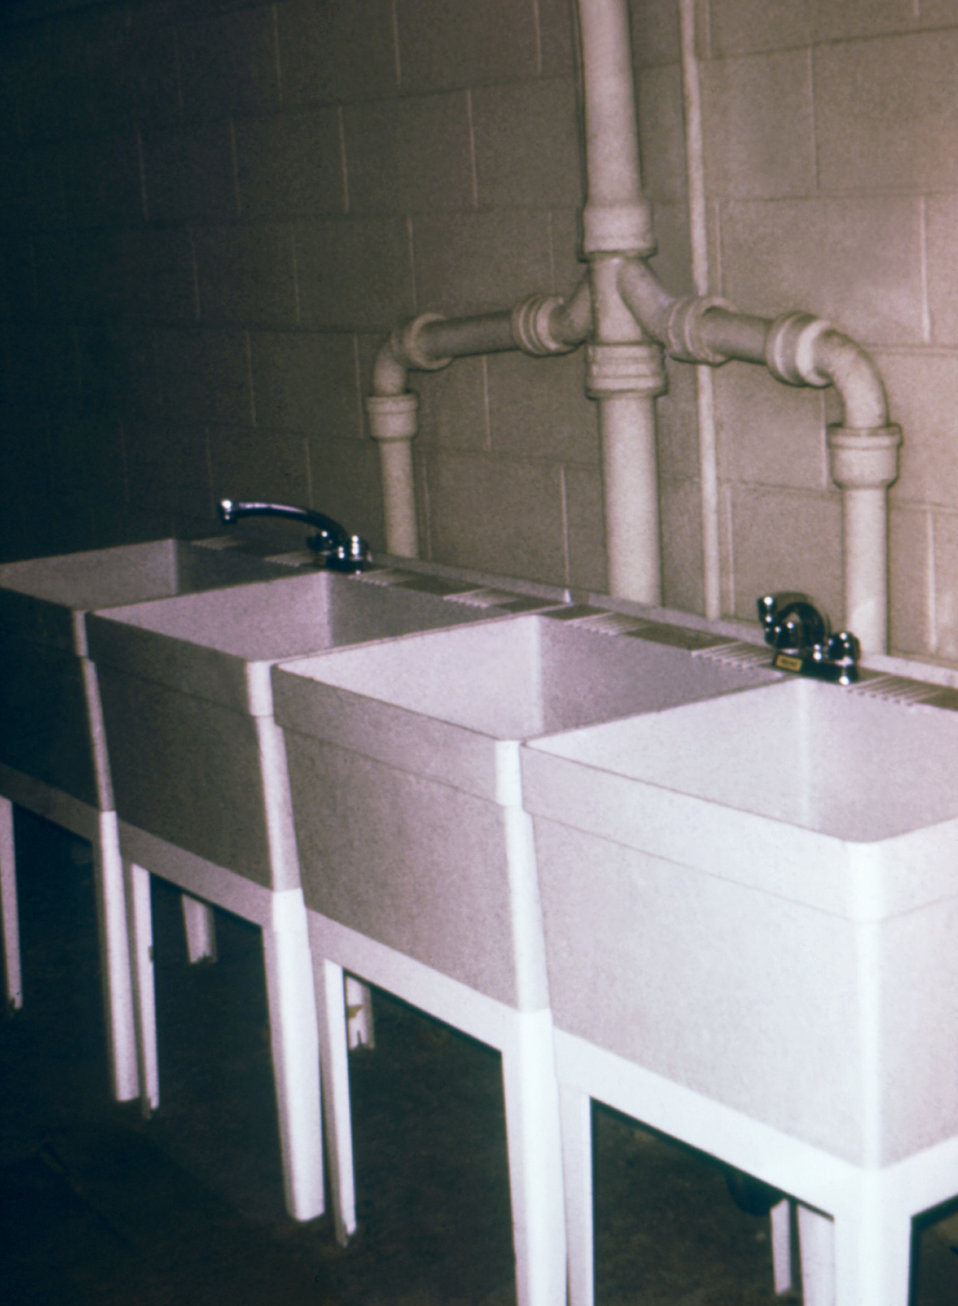 These laundry tubs are an example of proper water supply conditions because the faucets are placed above the water spill rims.